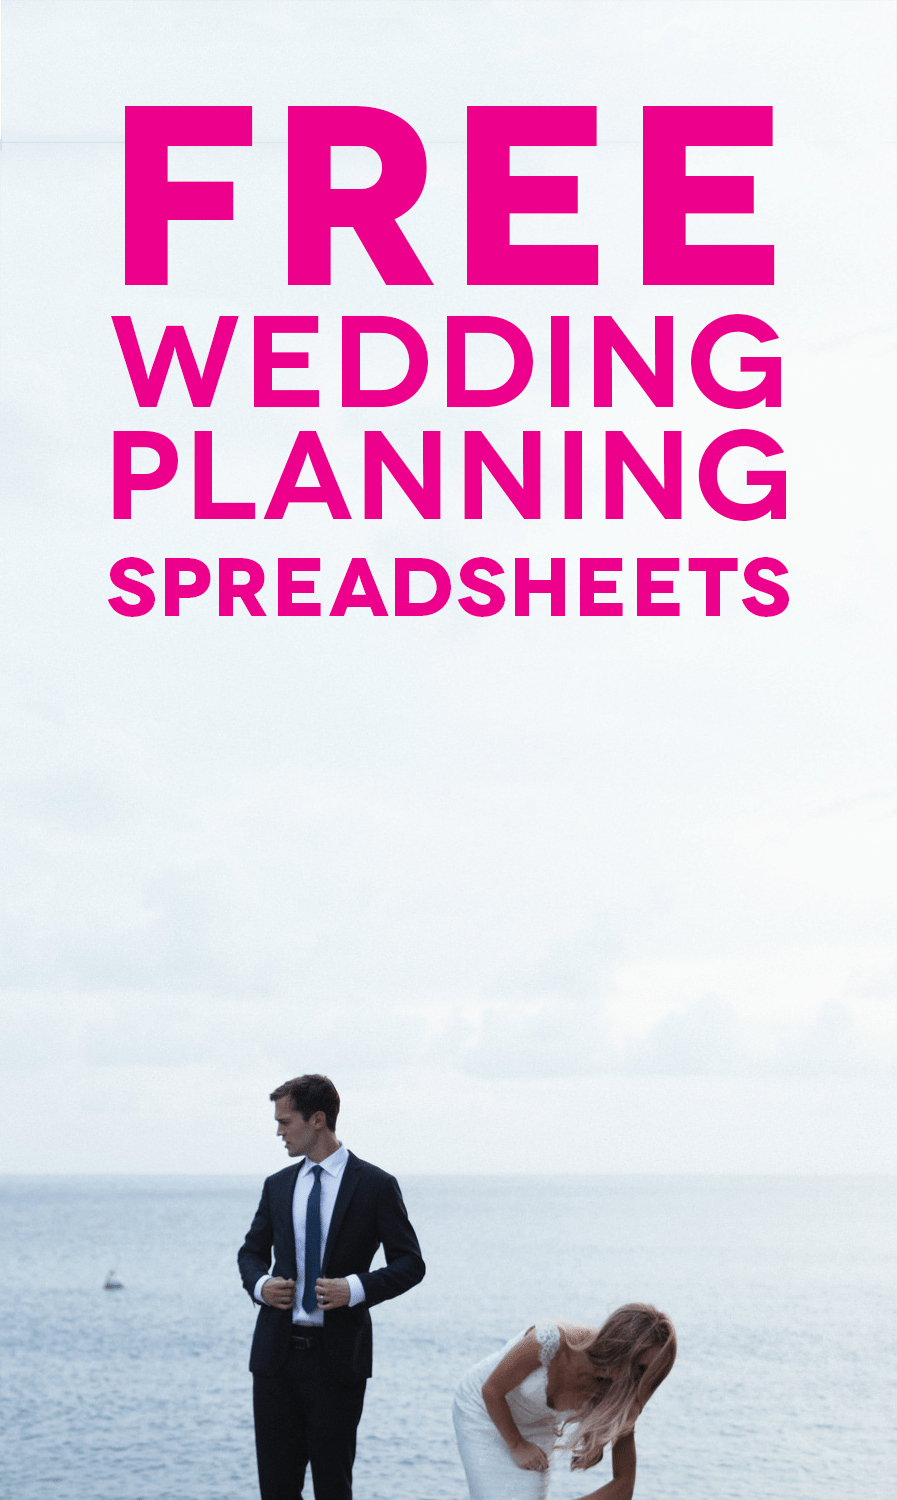 Wedding Planning Spreadsheet Free With Regard To Customizable And Free Wedding Spreadsheets